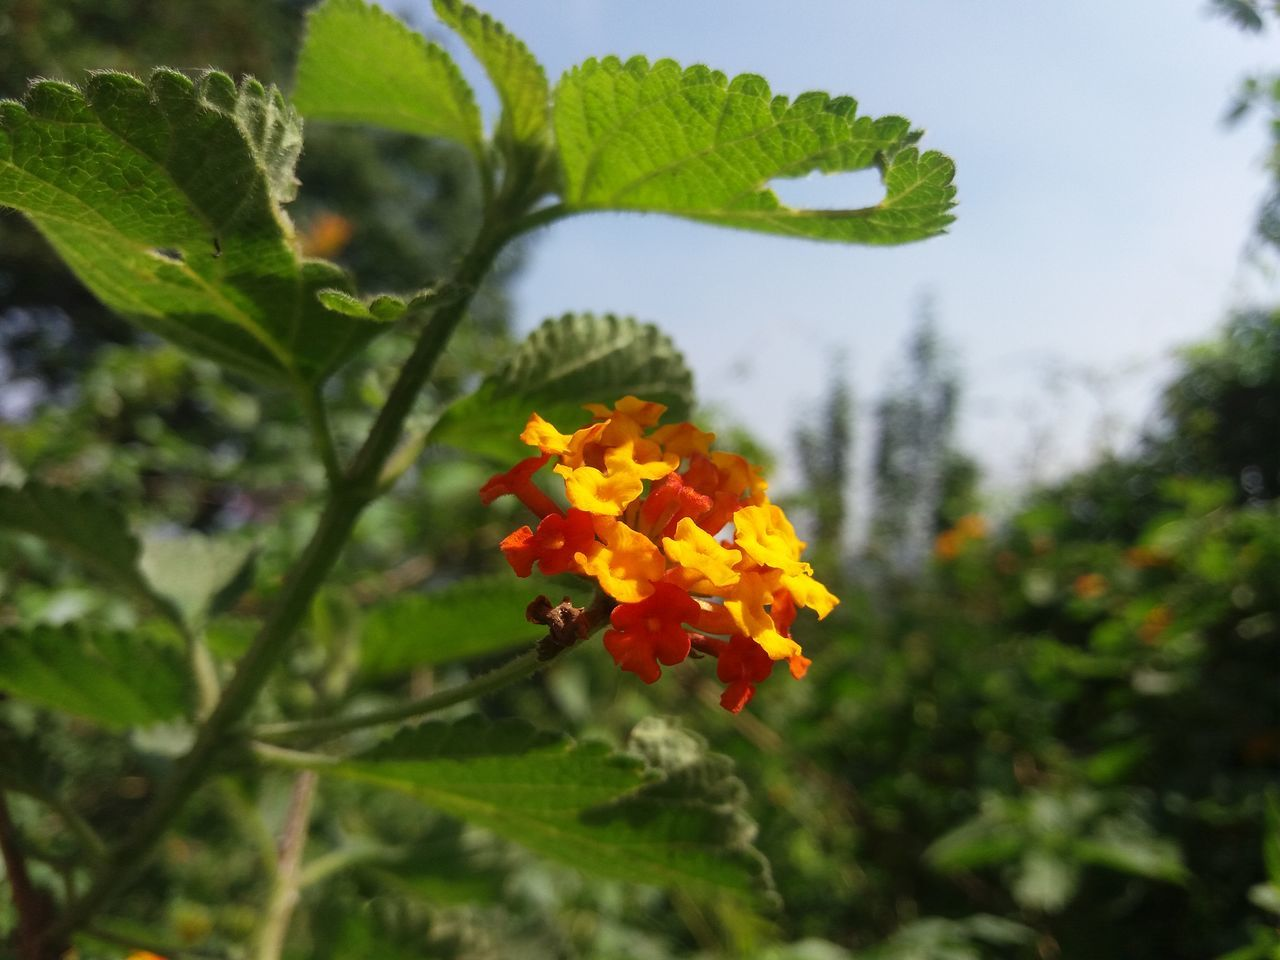 flower, growth, plant, fragility, nature, freshness, beauty in nature, outdoors, focus on foreground, day, leaf, petal, green color, no people, lantana camara, flower head, park - man made space, close-up, blooming